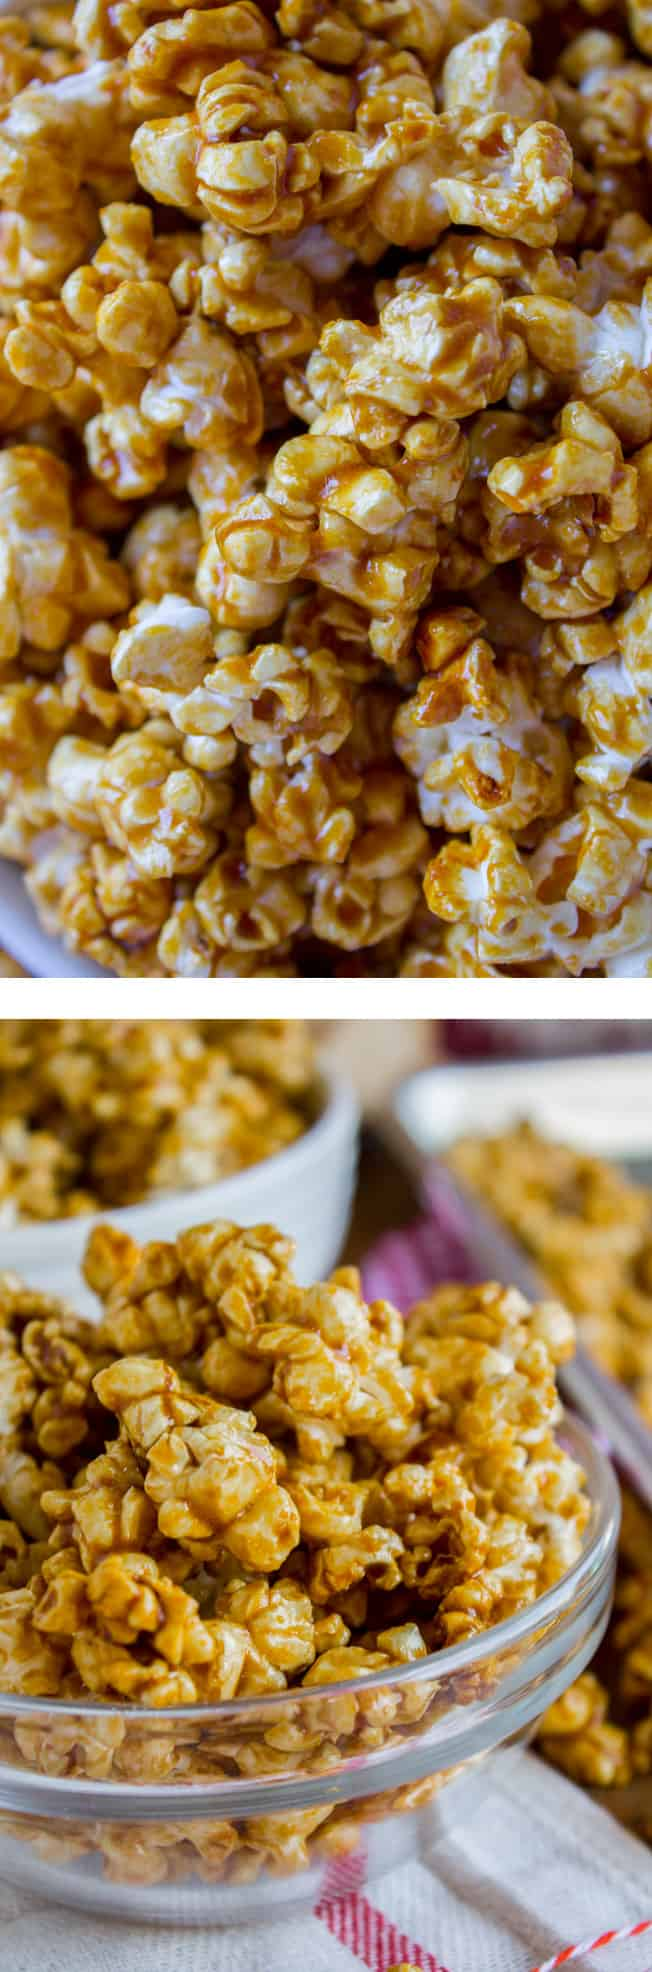 10 minute caramel popcorn in the microwave